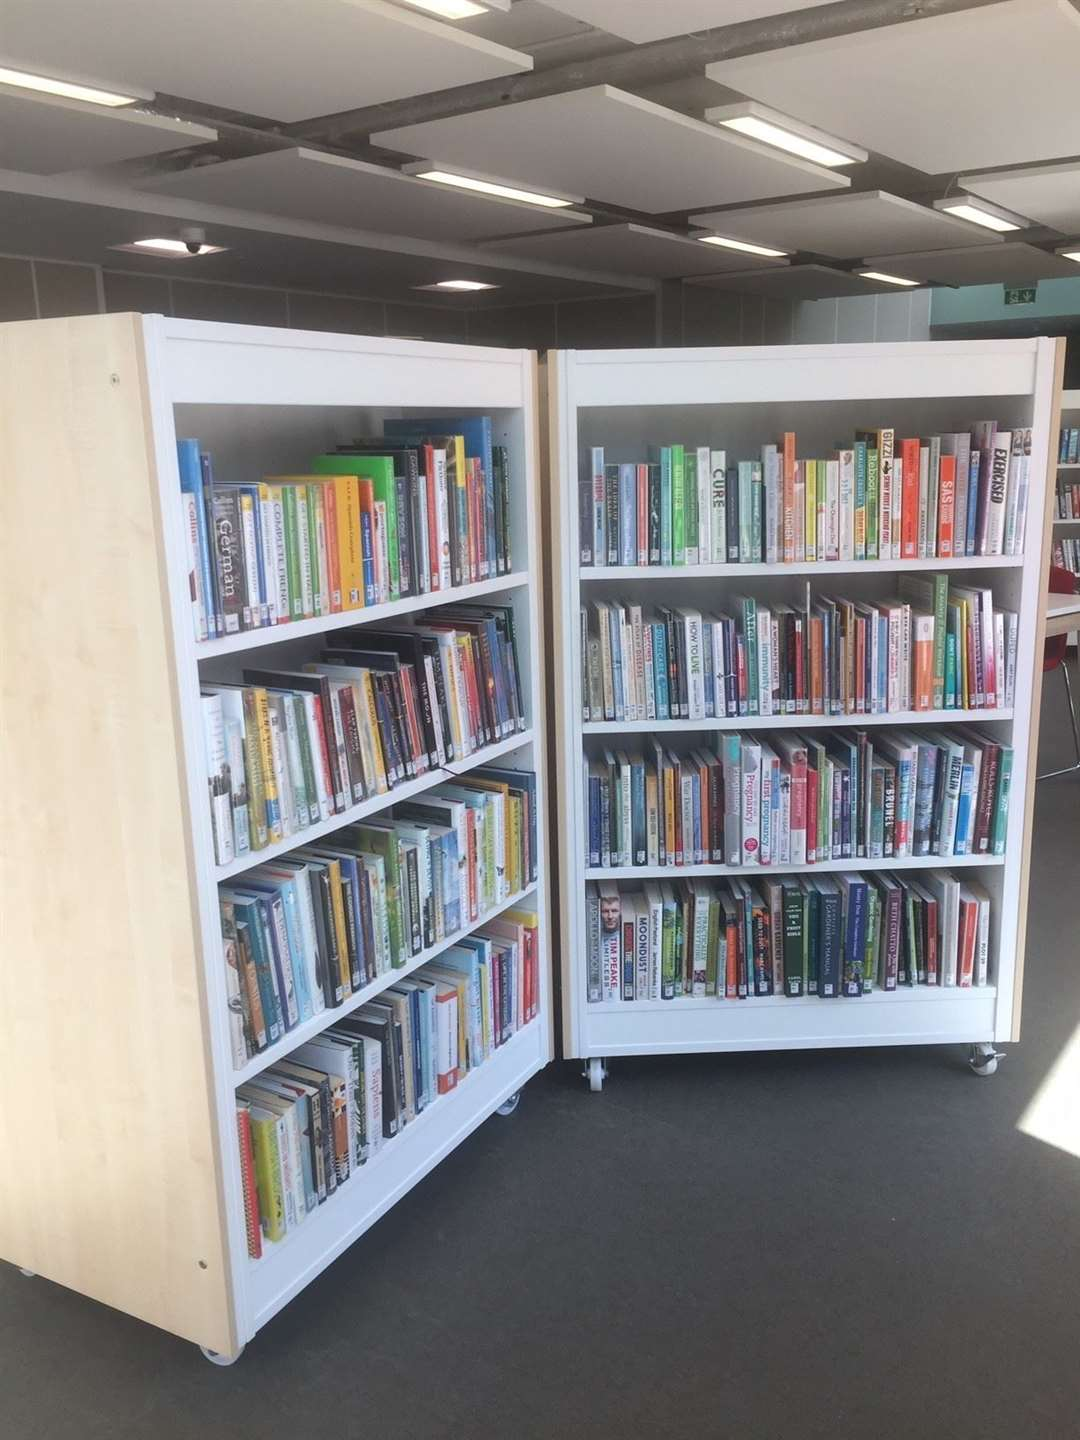 The library has hundreds of new books